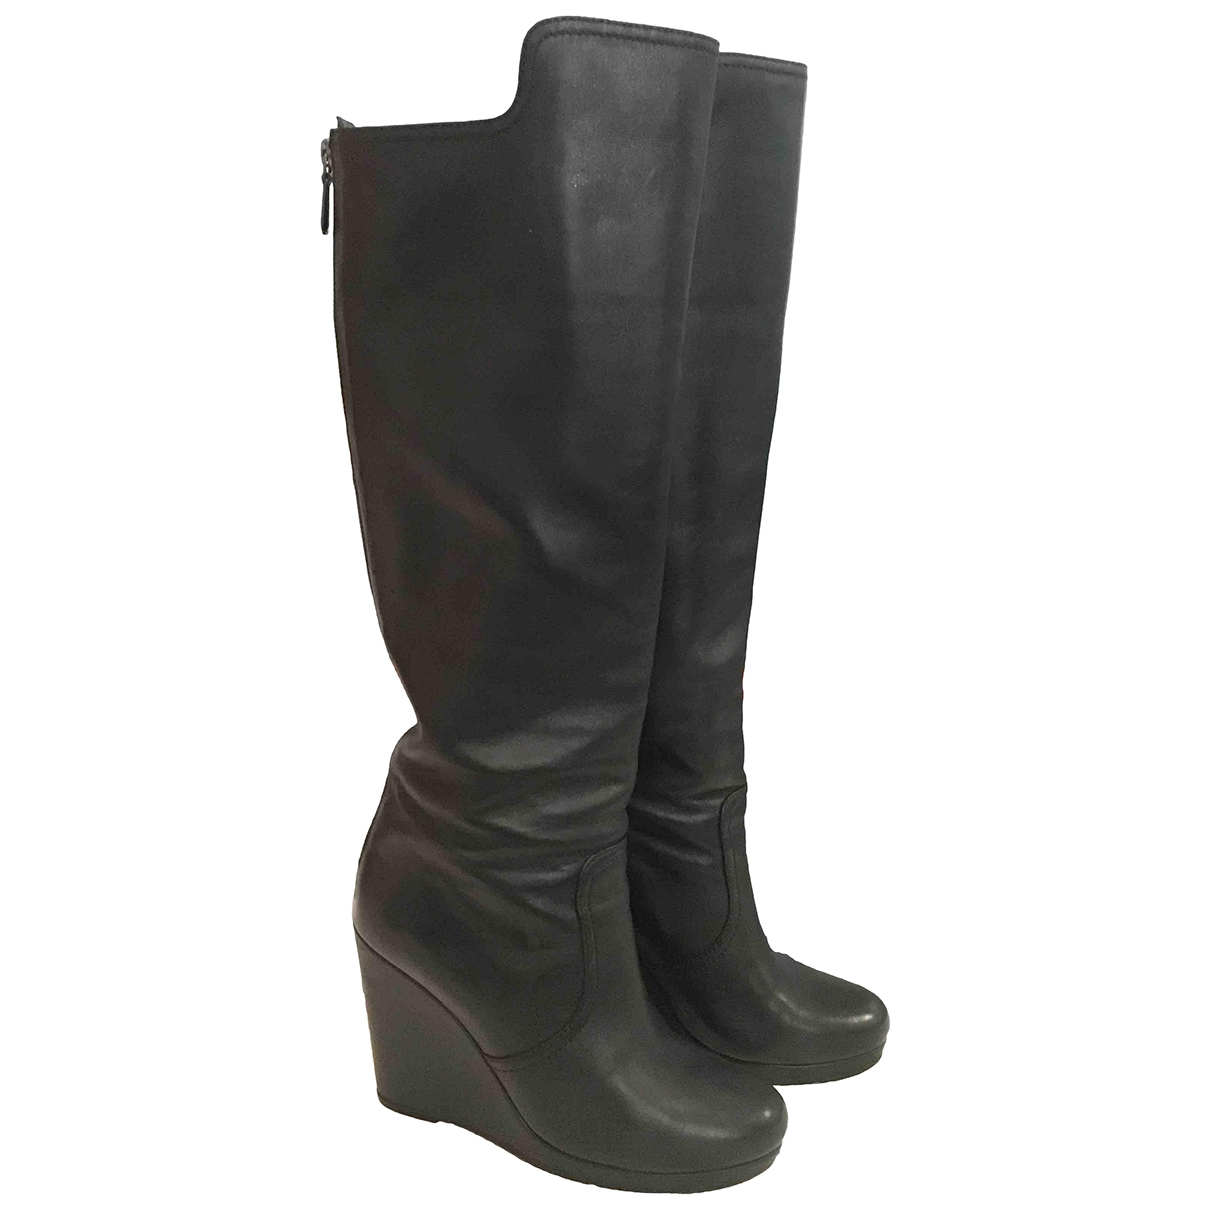 Prada \N Black Leather Boots for Women 37 IT